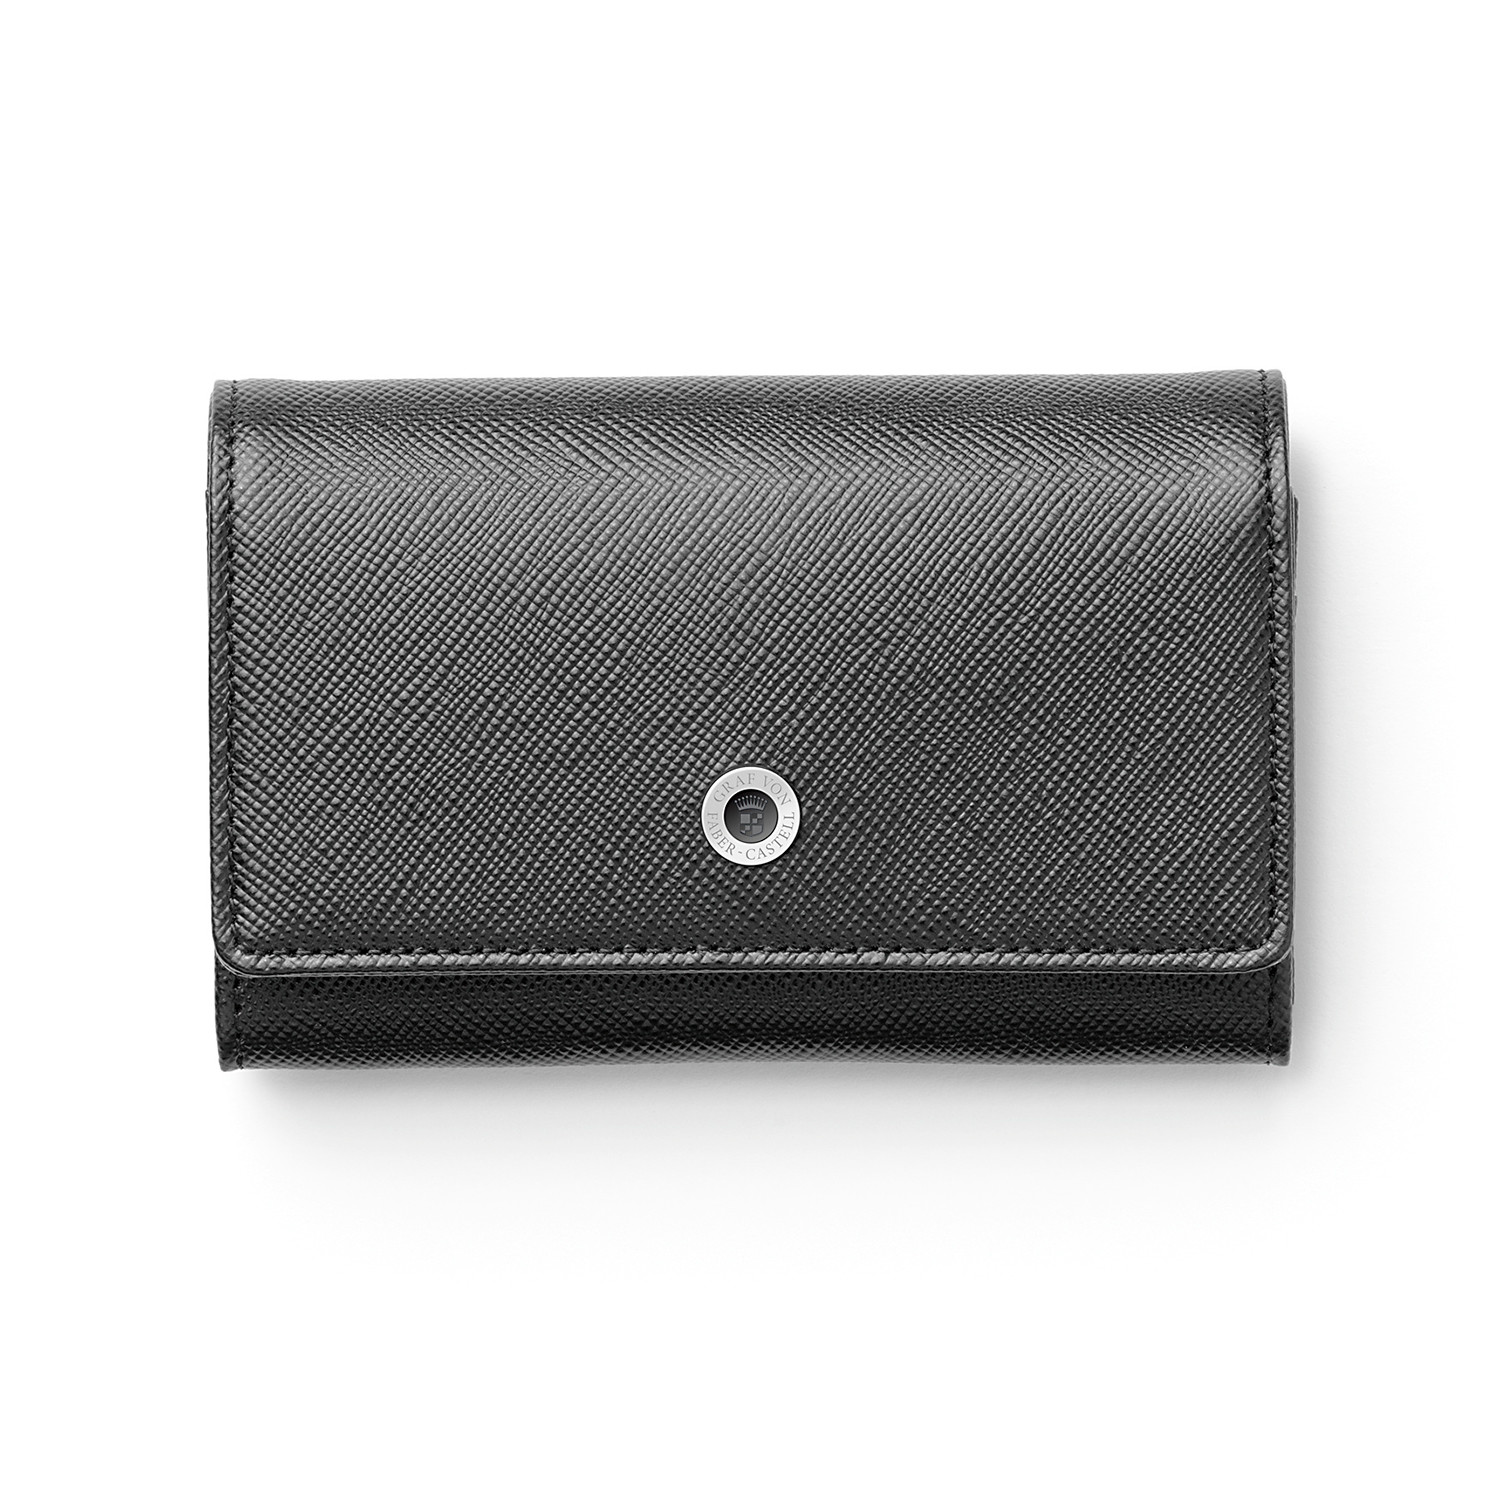 Platinum plated rollerball leather business card case gift set platinum plated rollerball leather business card case gift set colourmoves